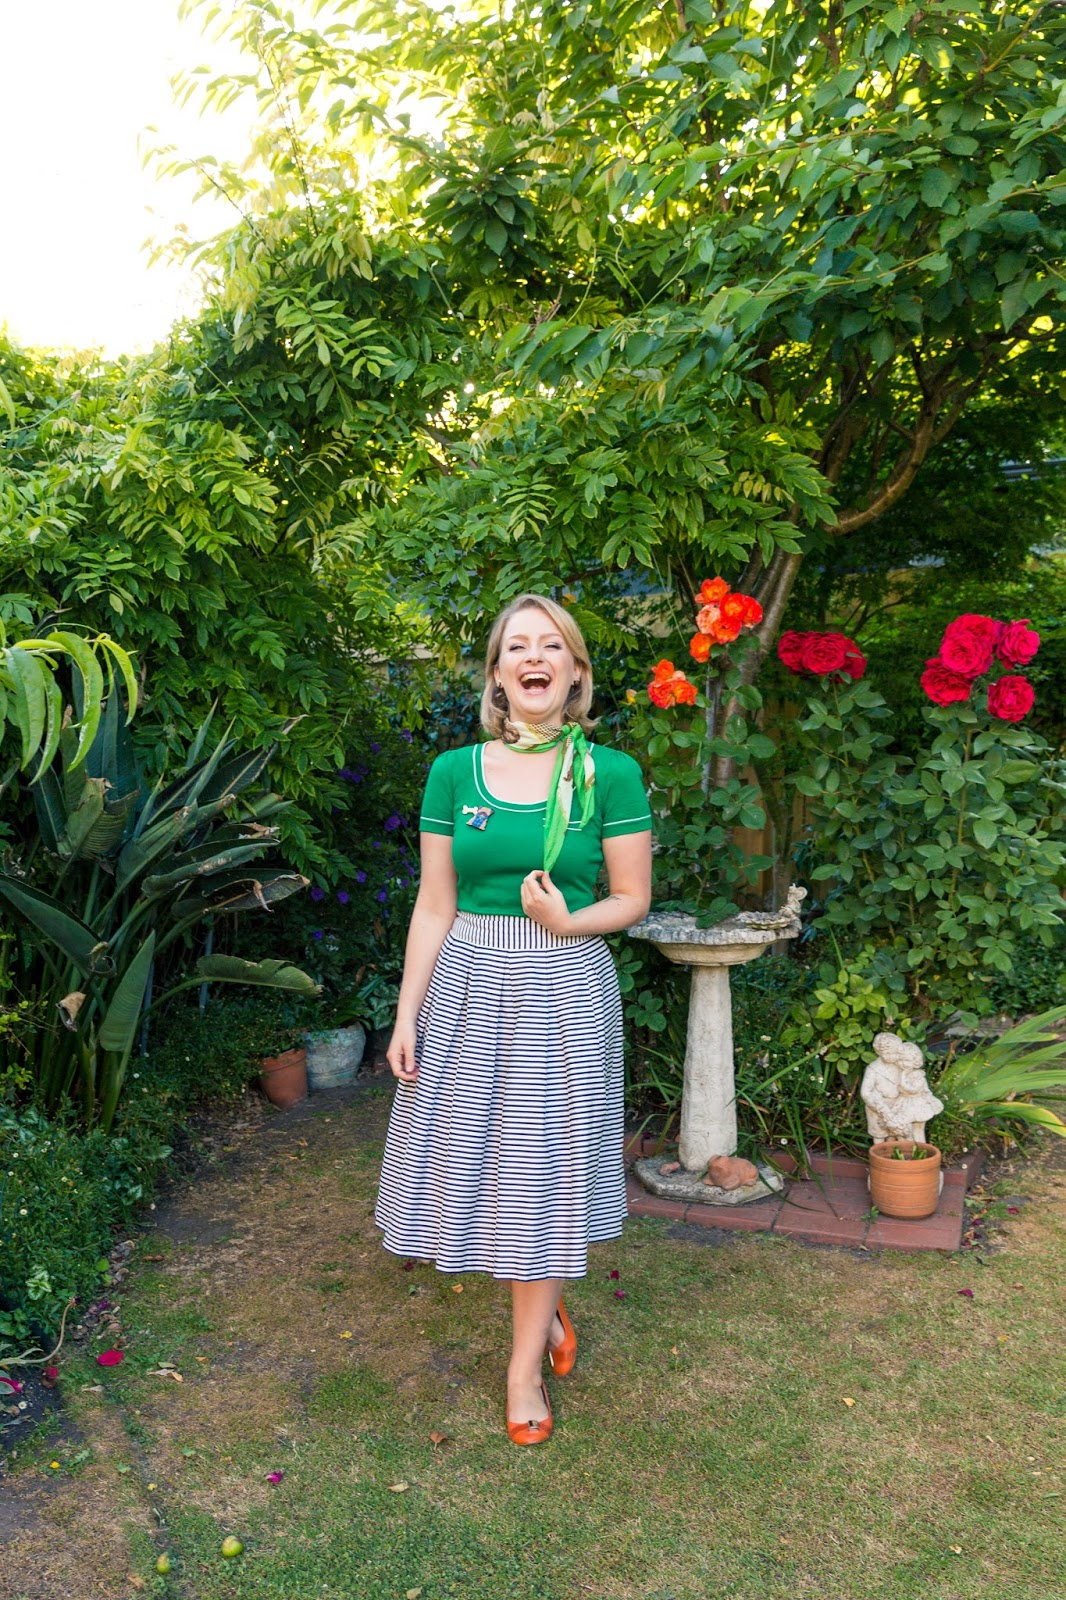 @findingfemme wears green Review top with navy striped skirt and orange Mimco flats.